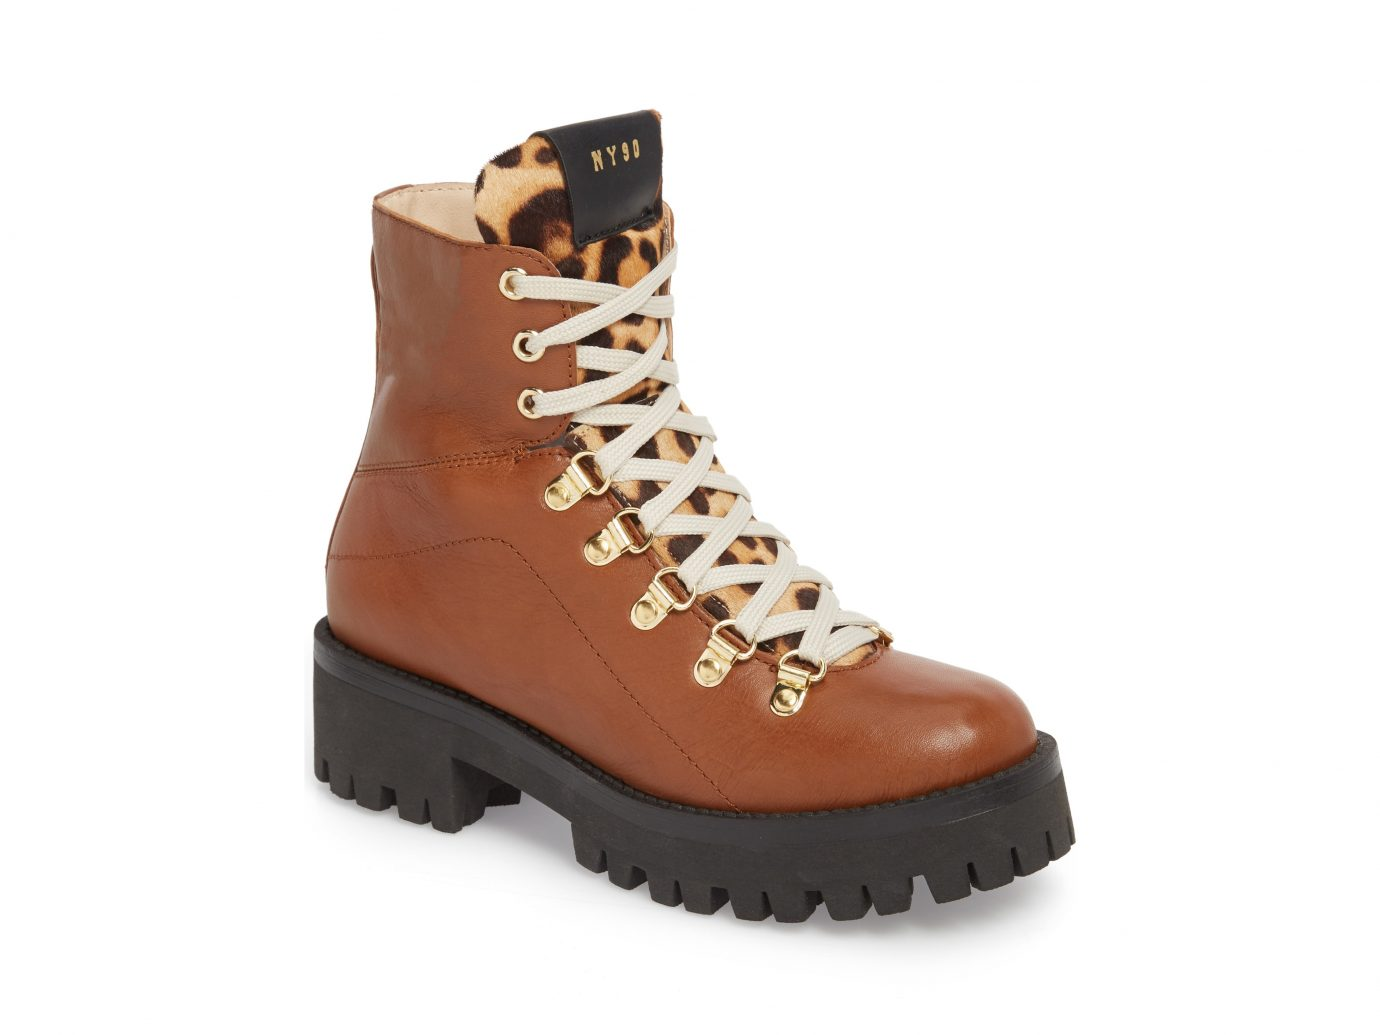 Hiking boots: Steve Madden Boom Hiker Boot with Genuine Calf Hair